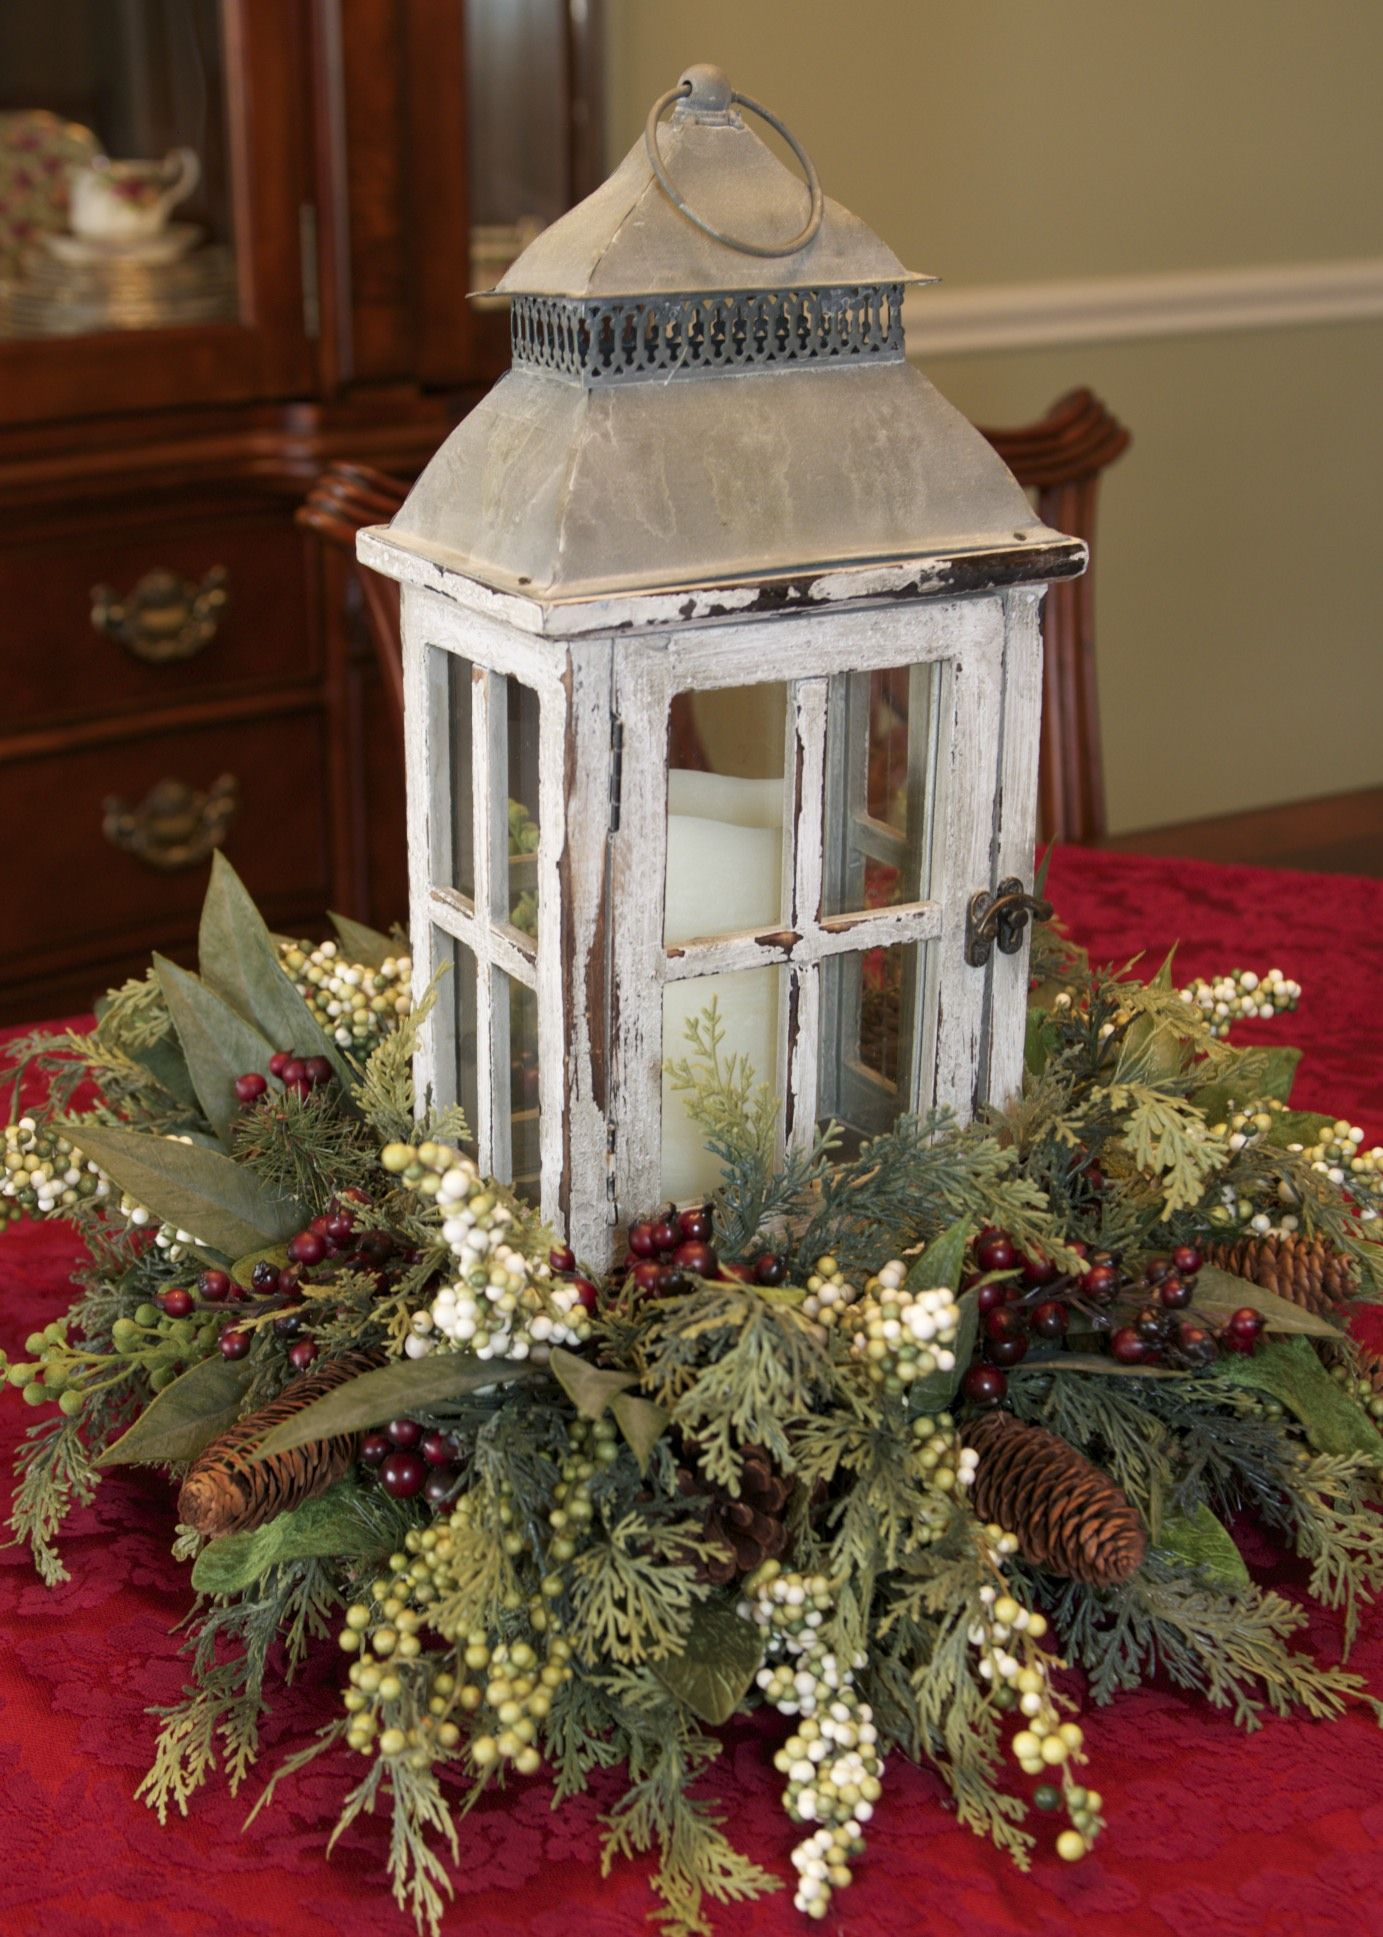 Winter Lantern Centerpiece by Linda Rosia. It's the Most